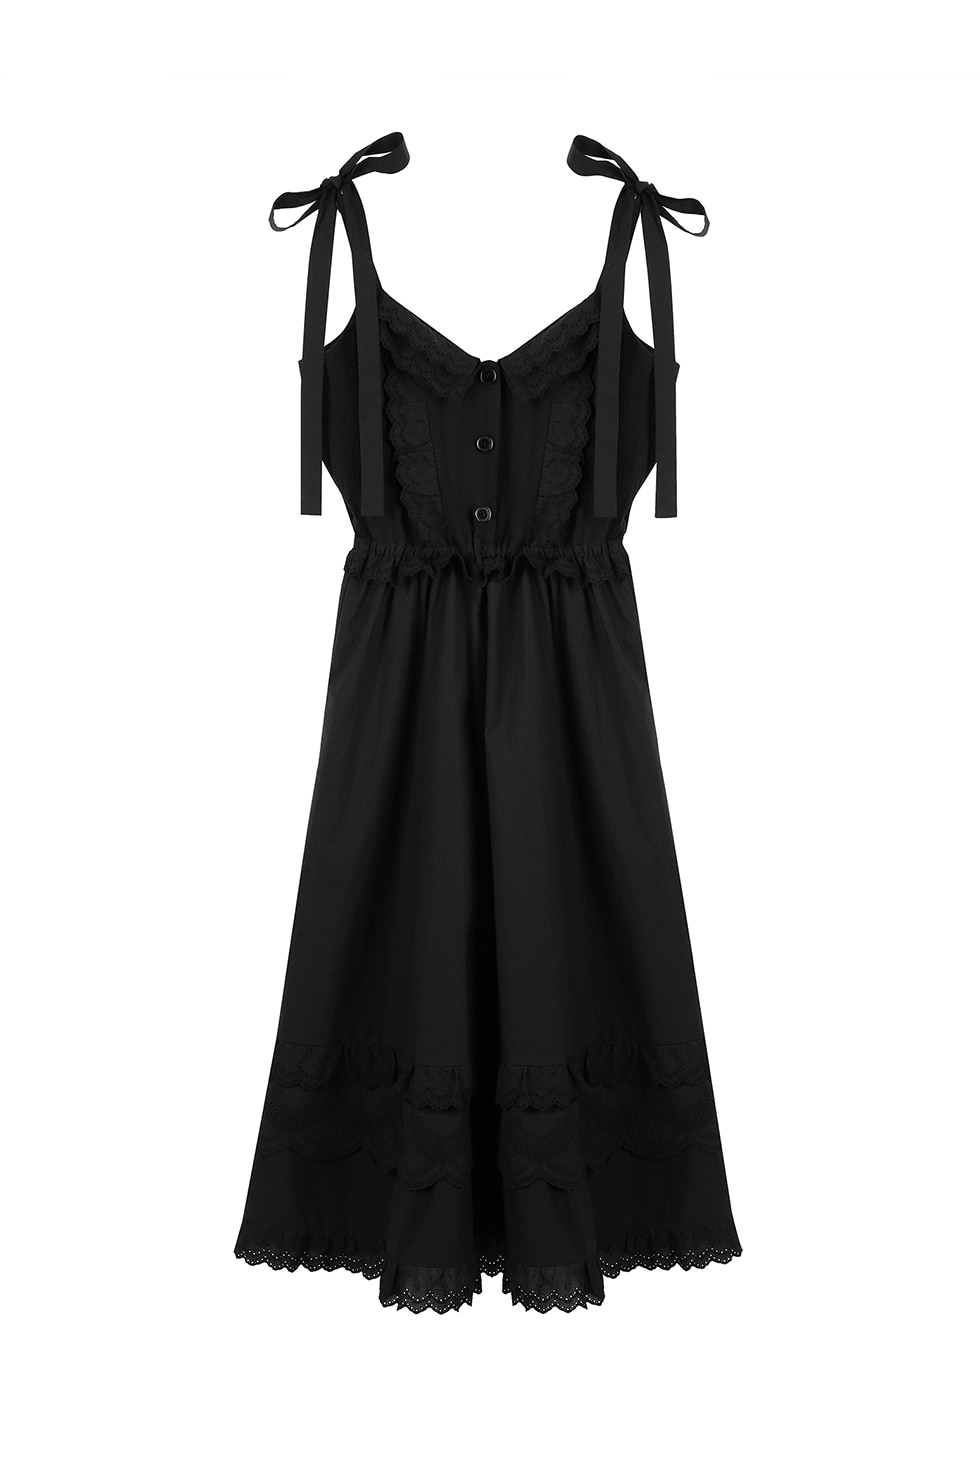 EMBROIDERY SLIP DRESS - BLACK